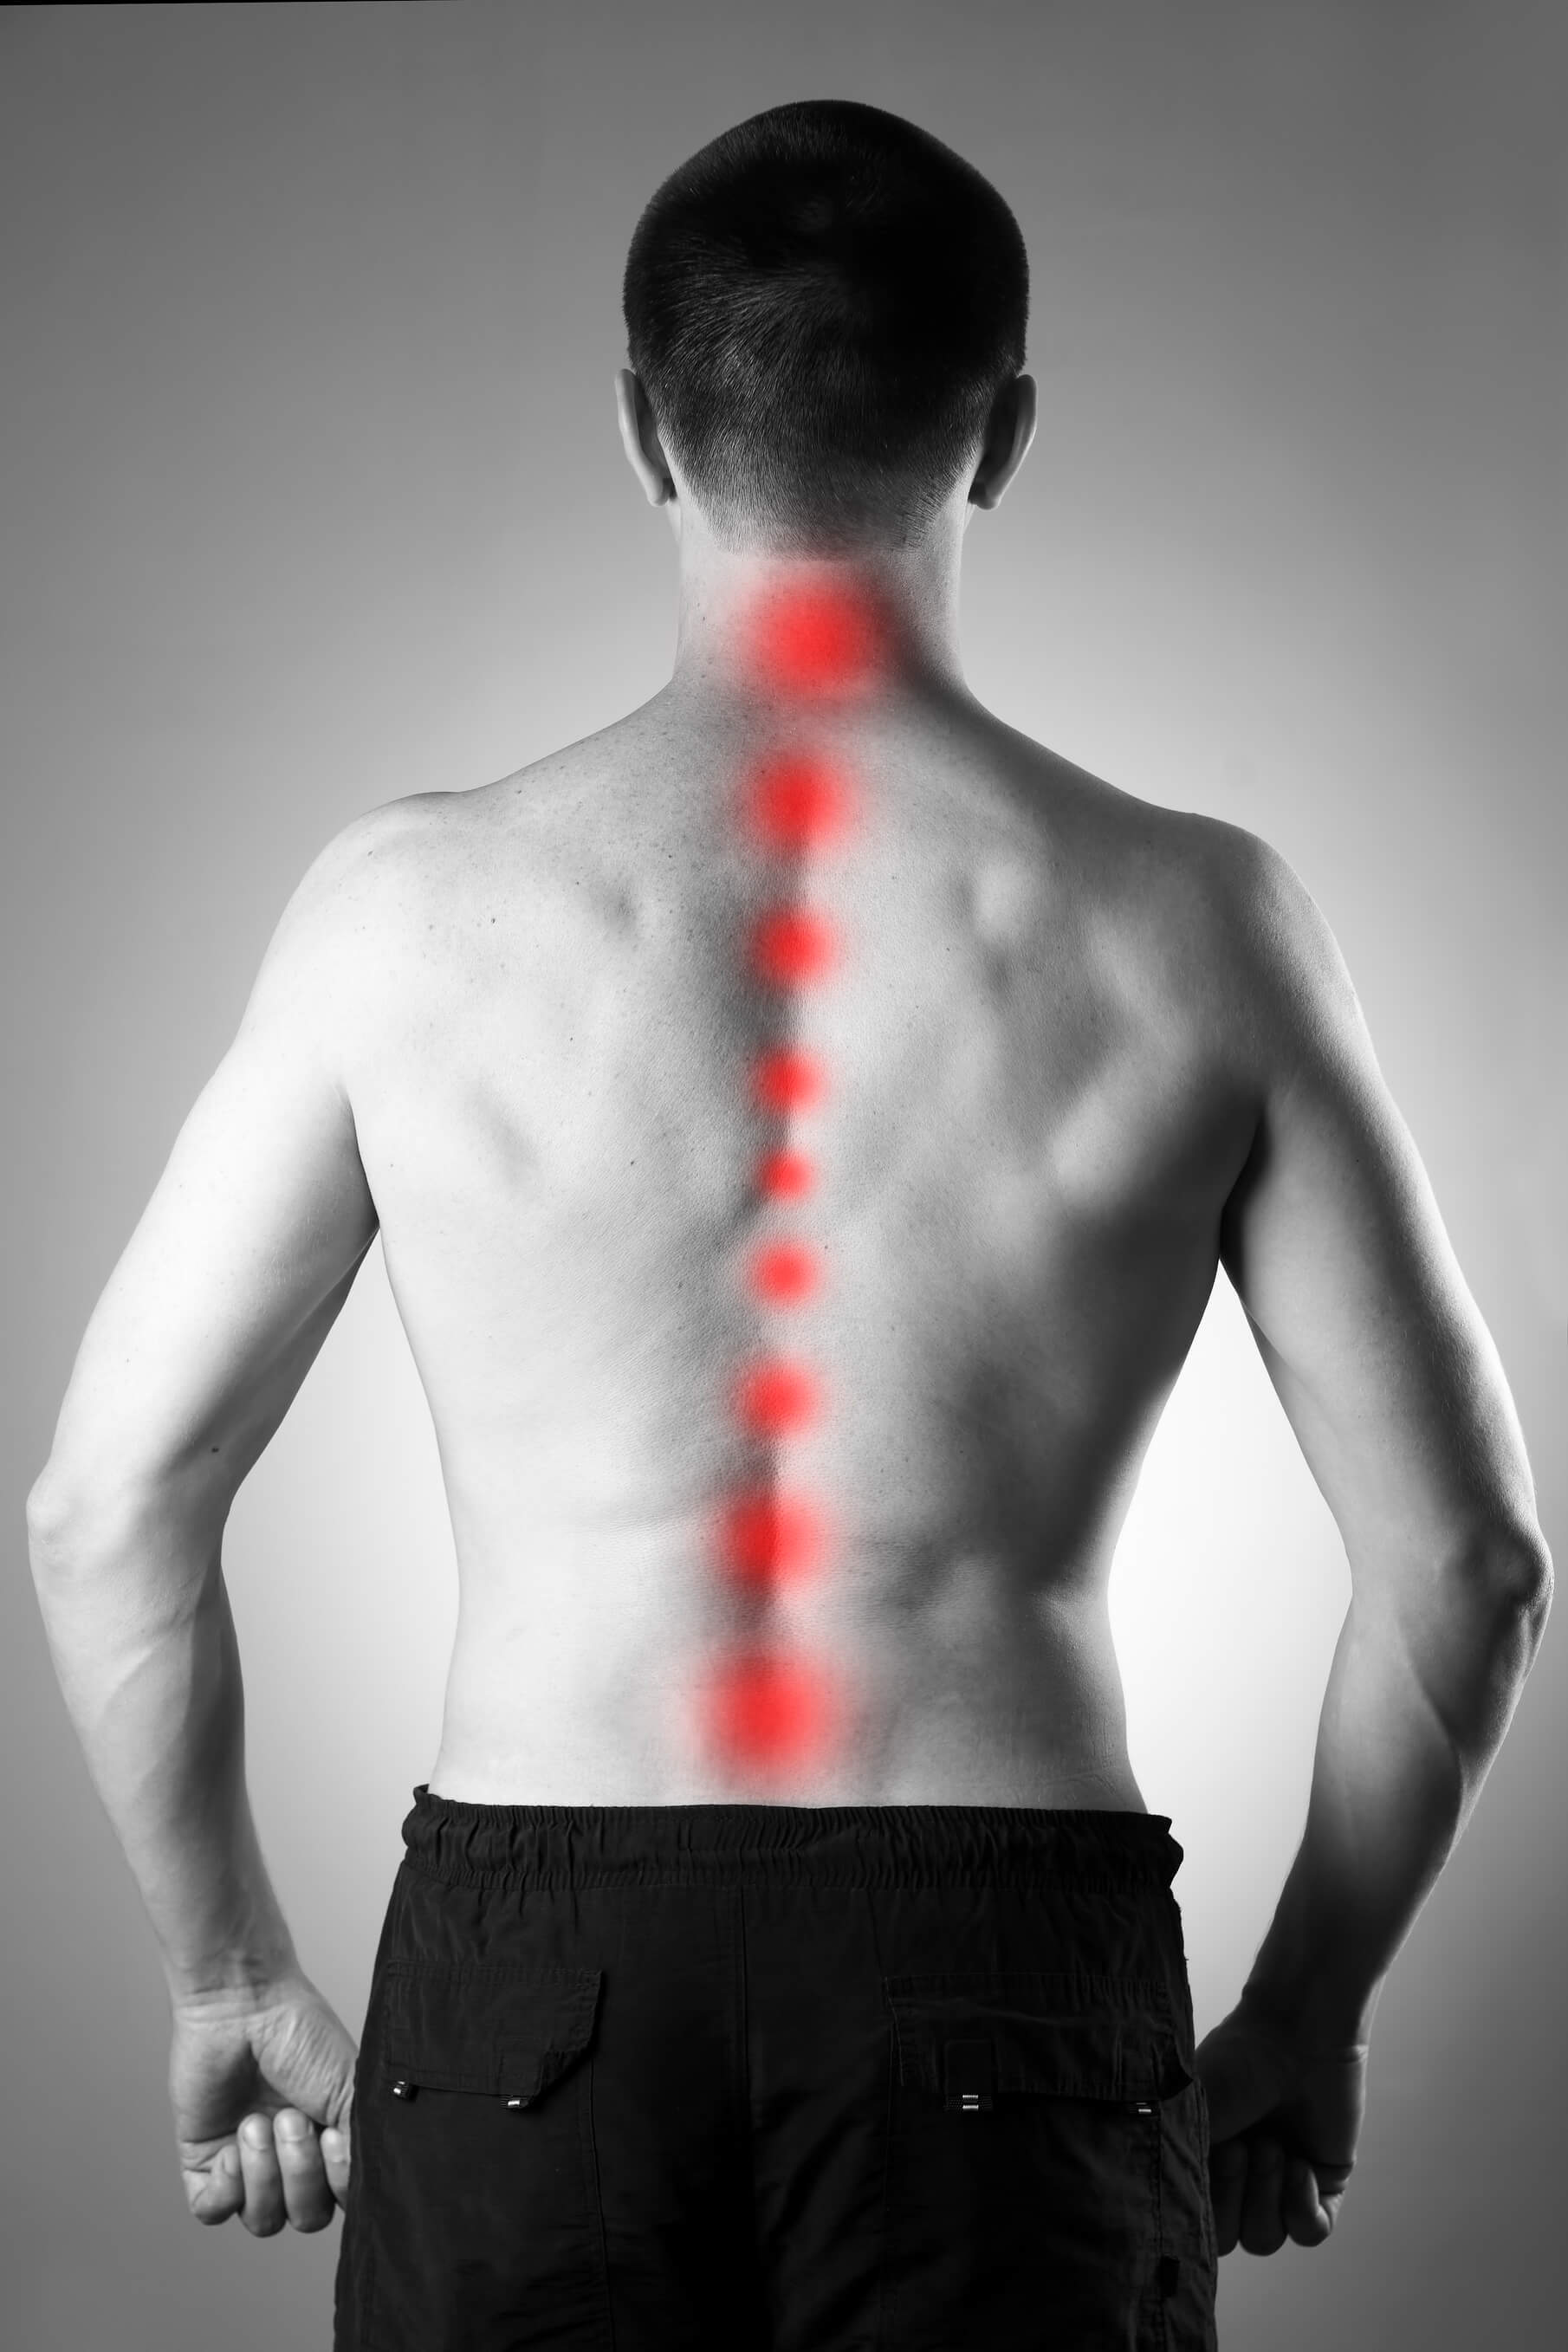 9 5 Ways Physical Therapy Can Help With Back Pain